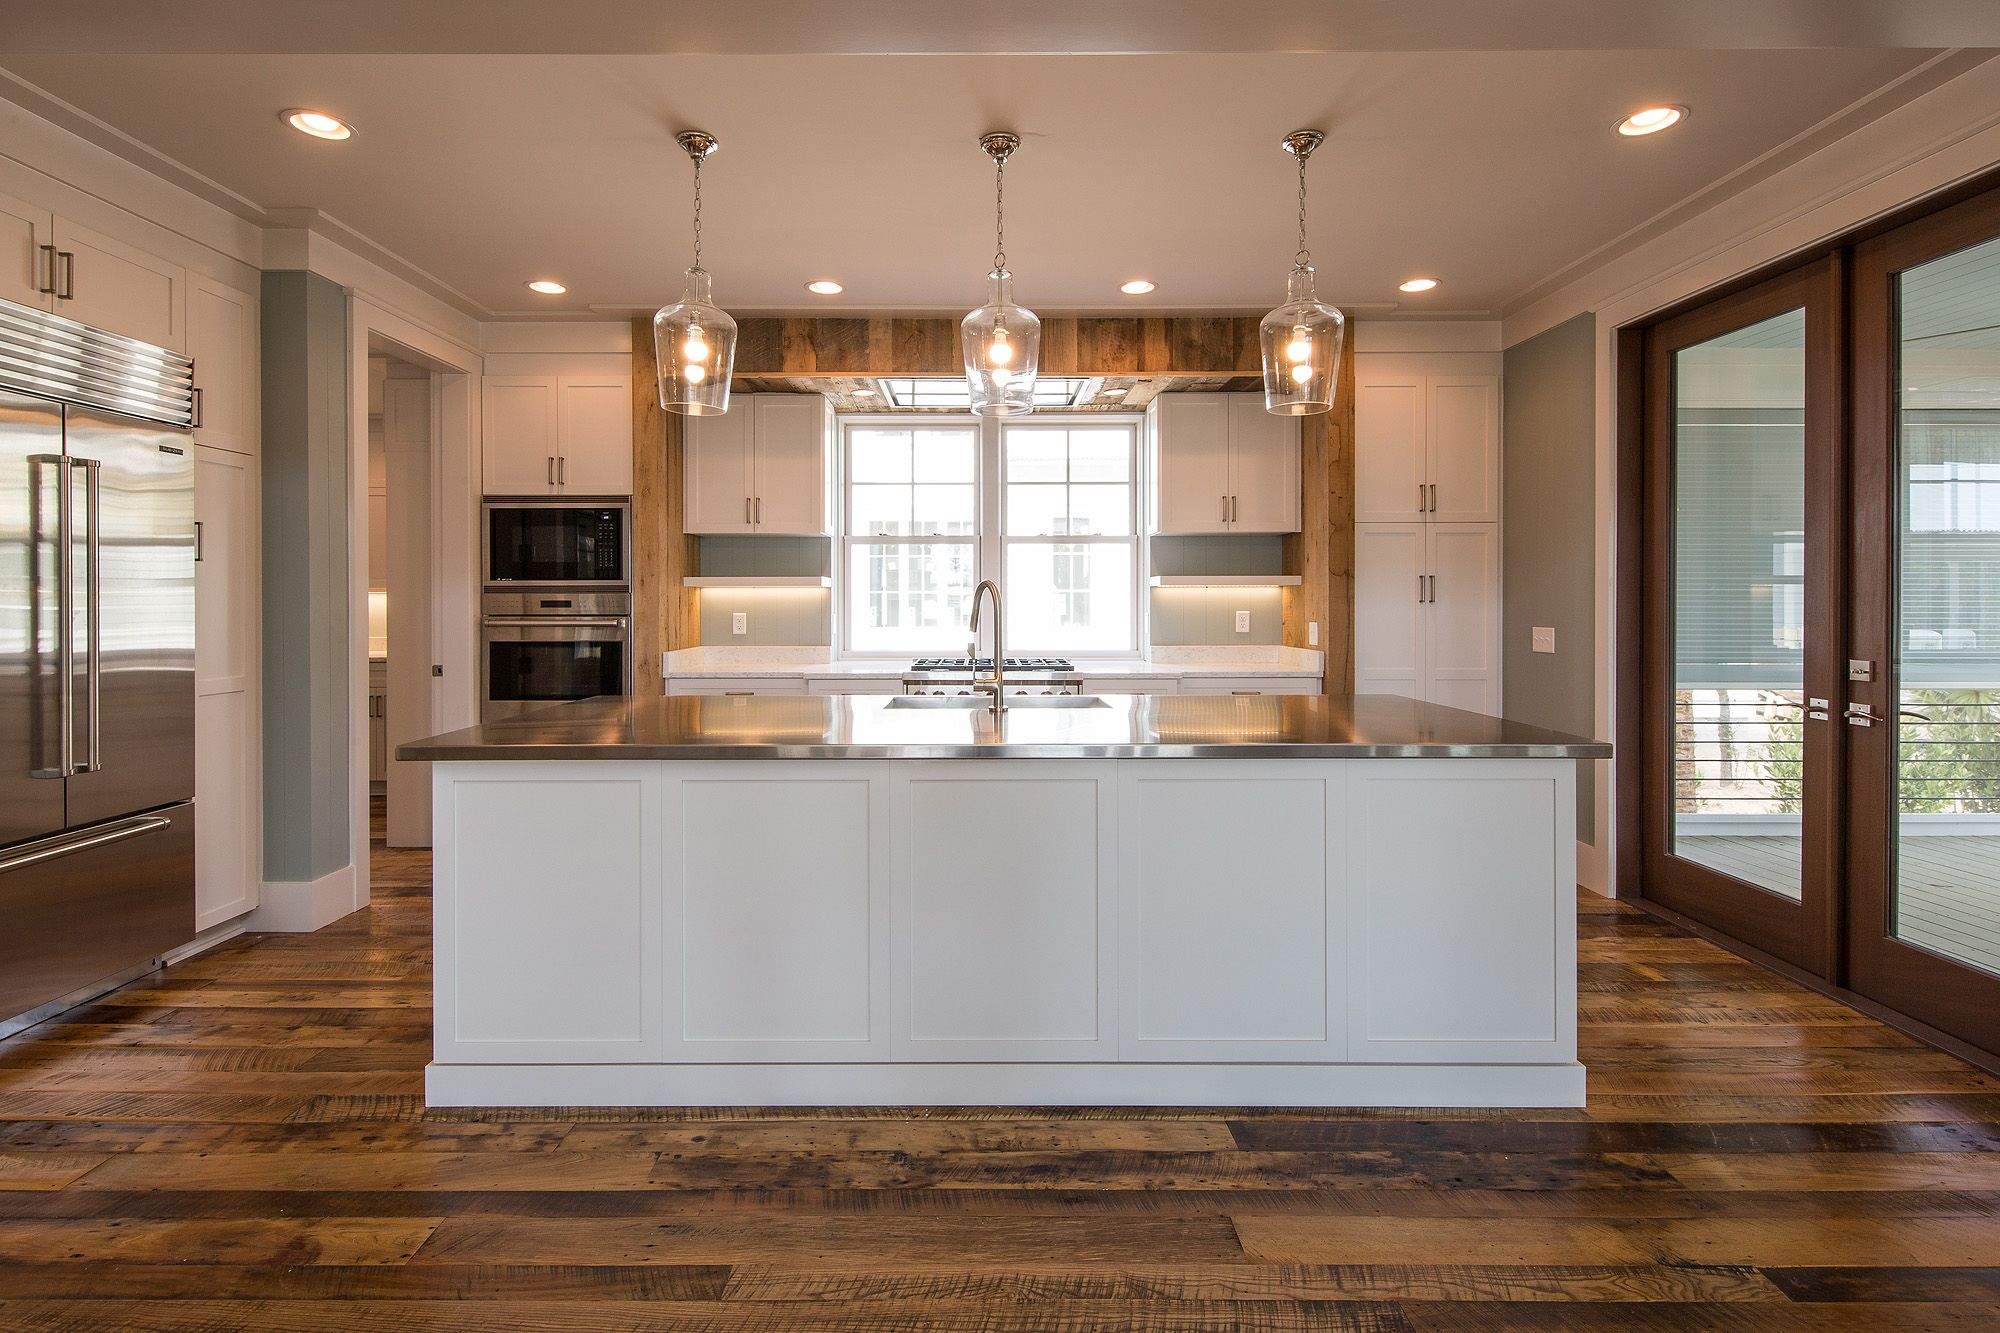 Spacious White Kitchen | Trendy Kitchen Lighting | Luxury Real Estate  Bluffton, South Carolina |